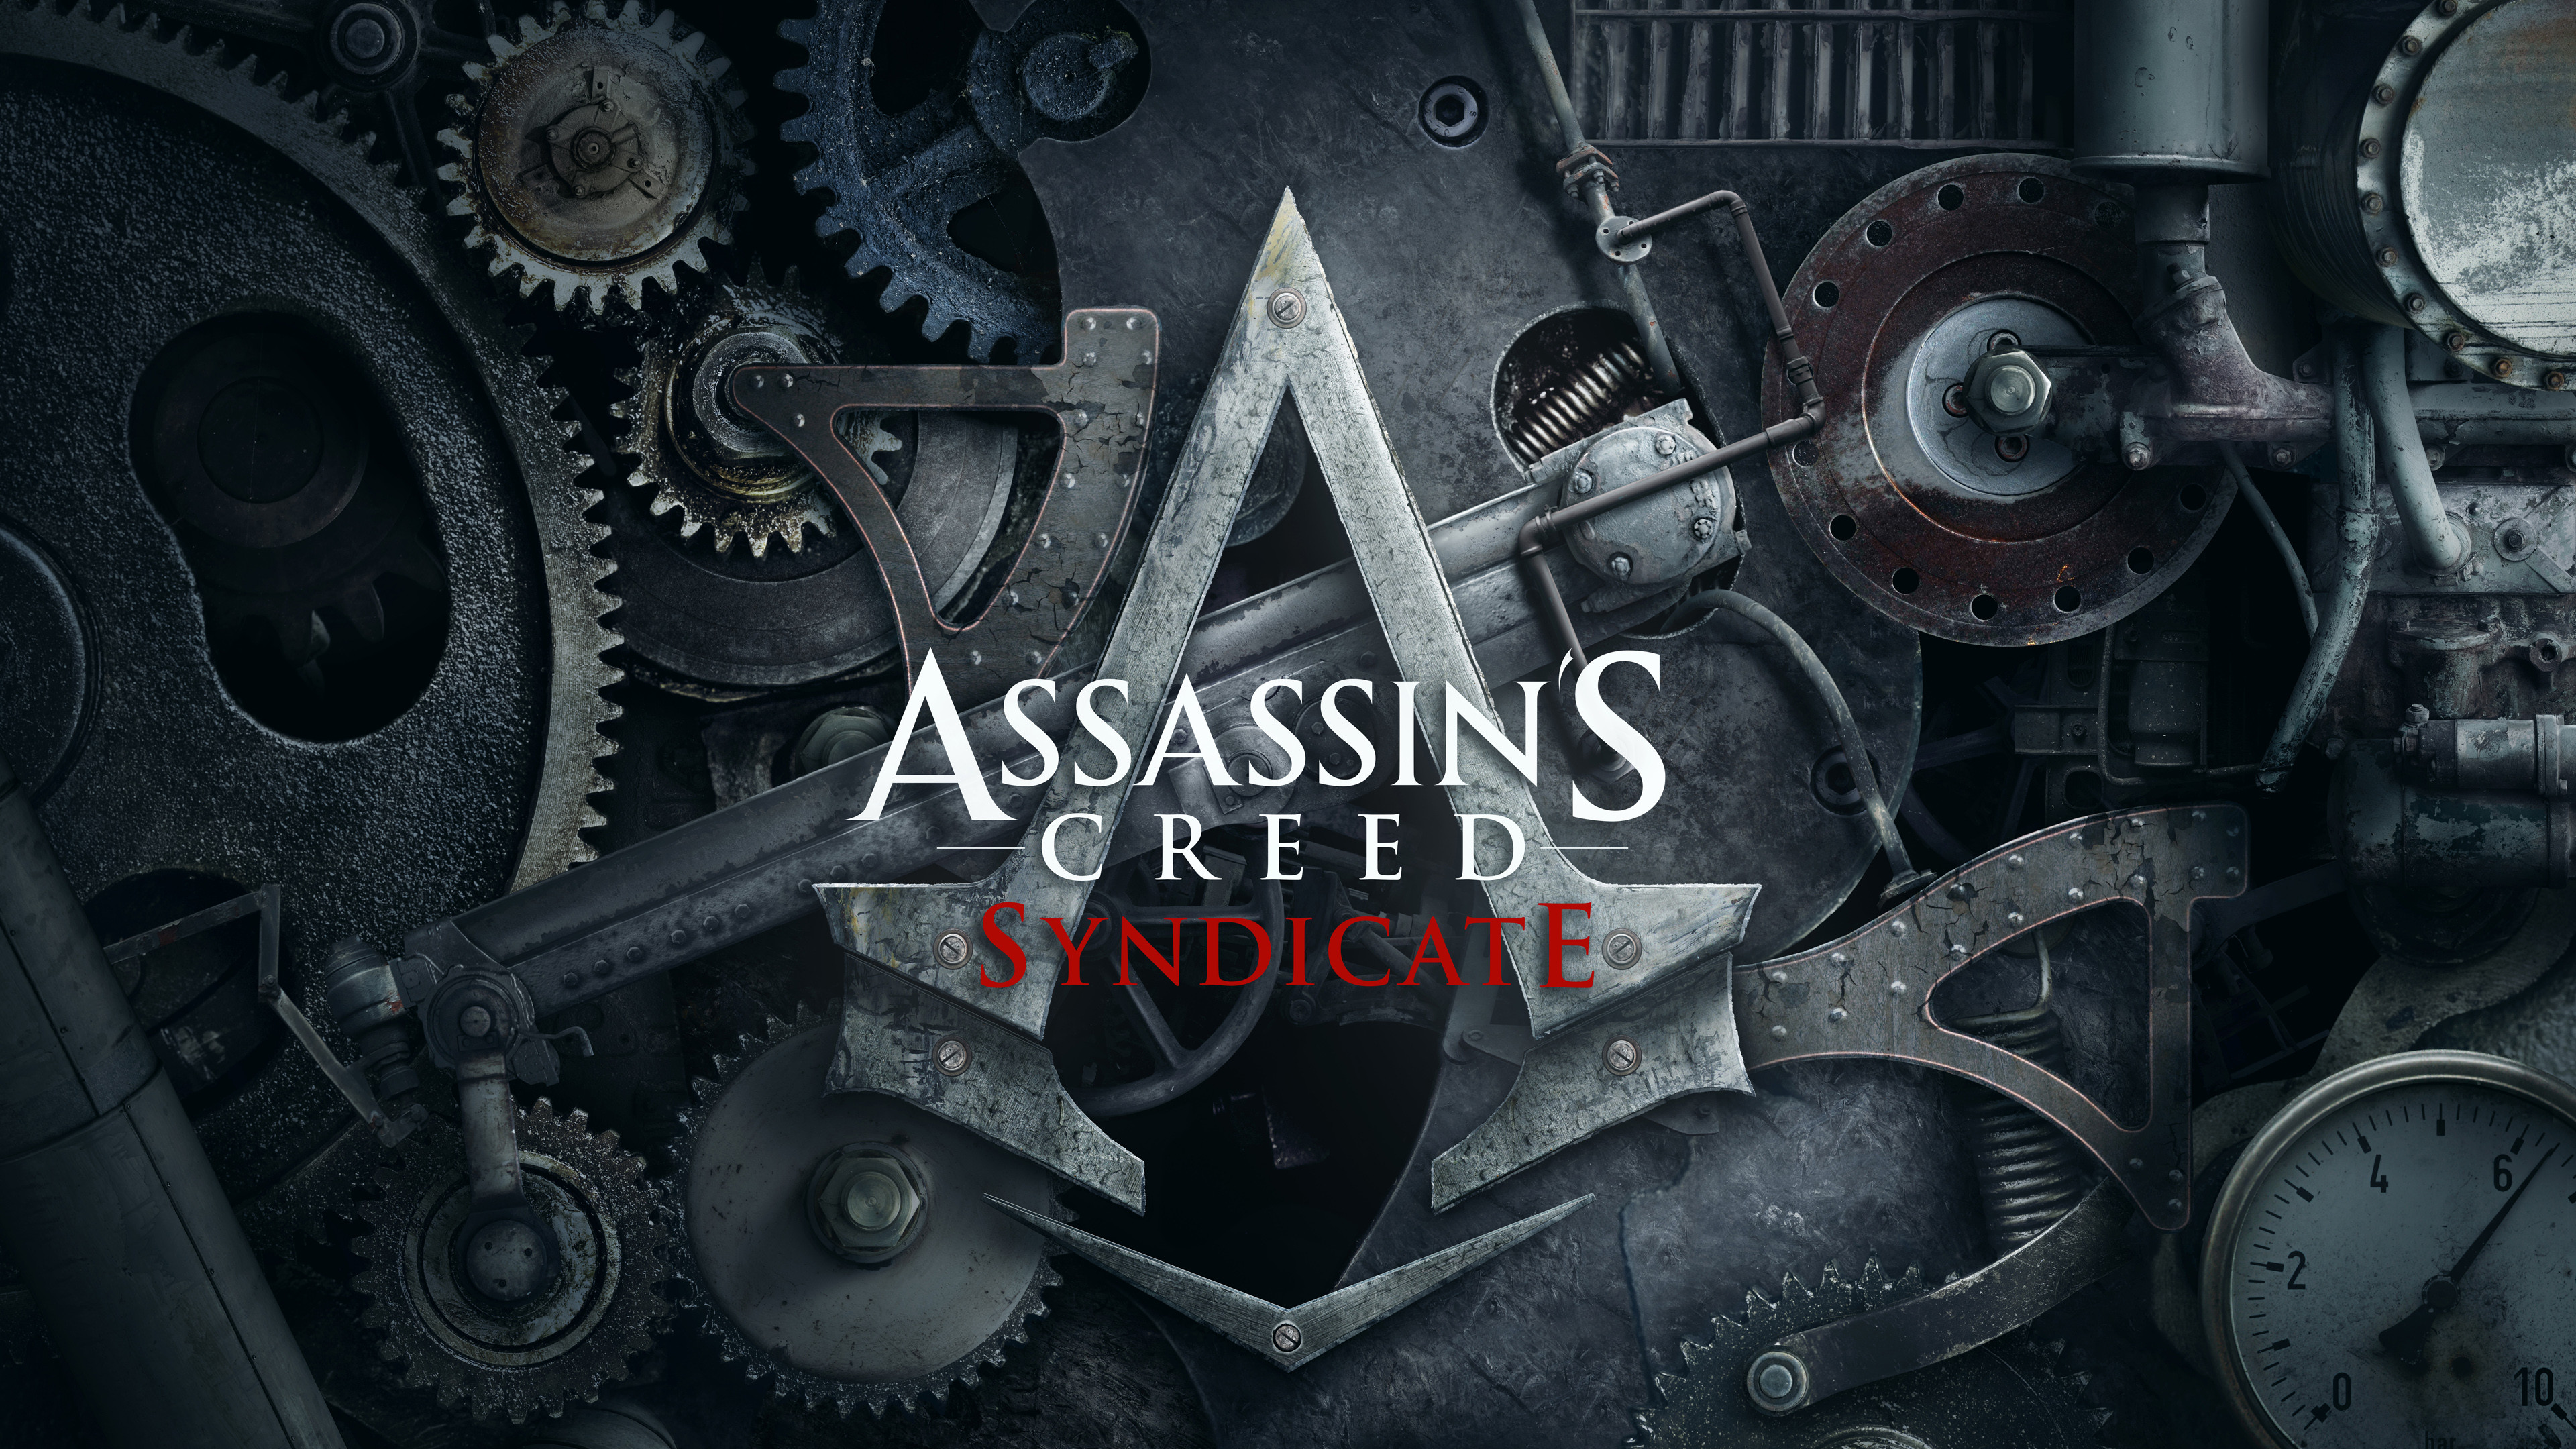 Most Inspiring Wallpaper Minecraft Assassin - 516353-full-size-assassins-creed-syndicate-wallpapers-3840x2160-for-1080p  You Should Have_583832.jpg